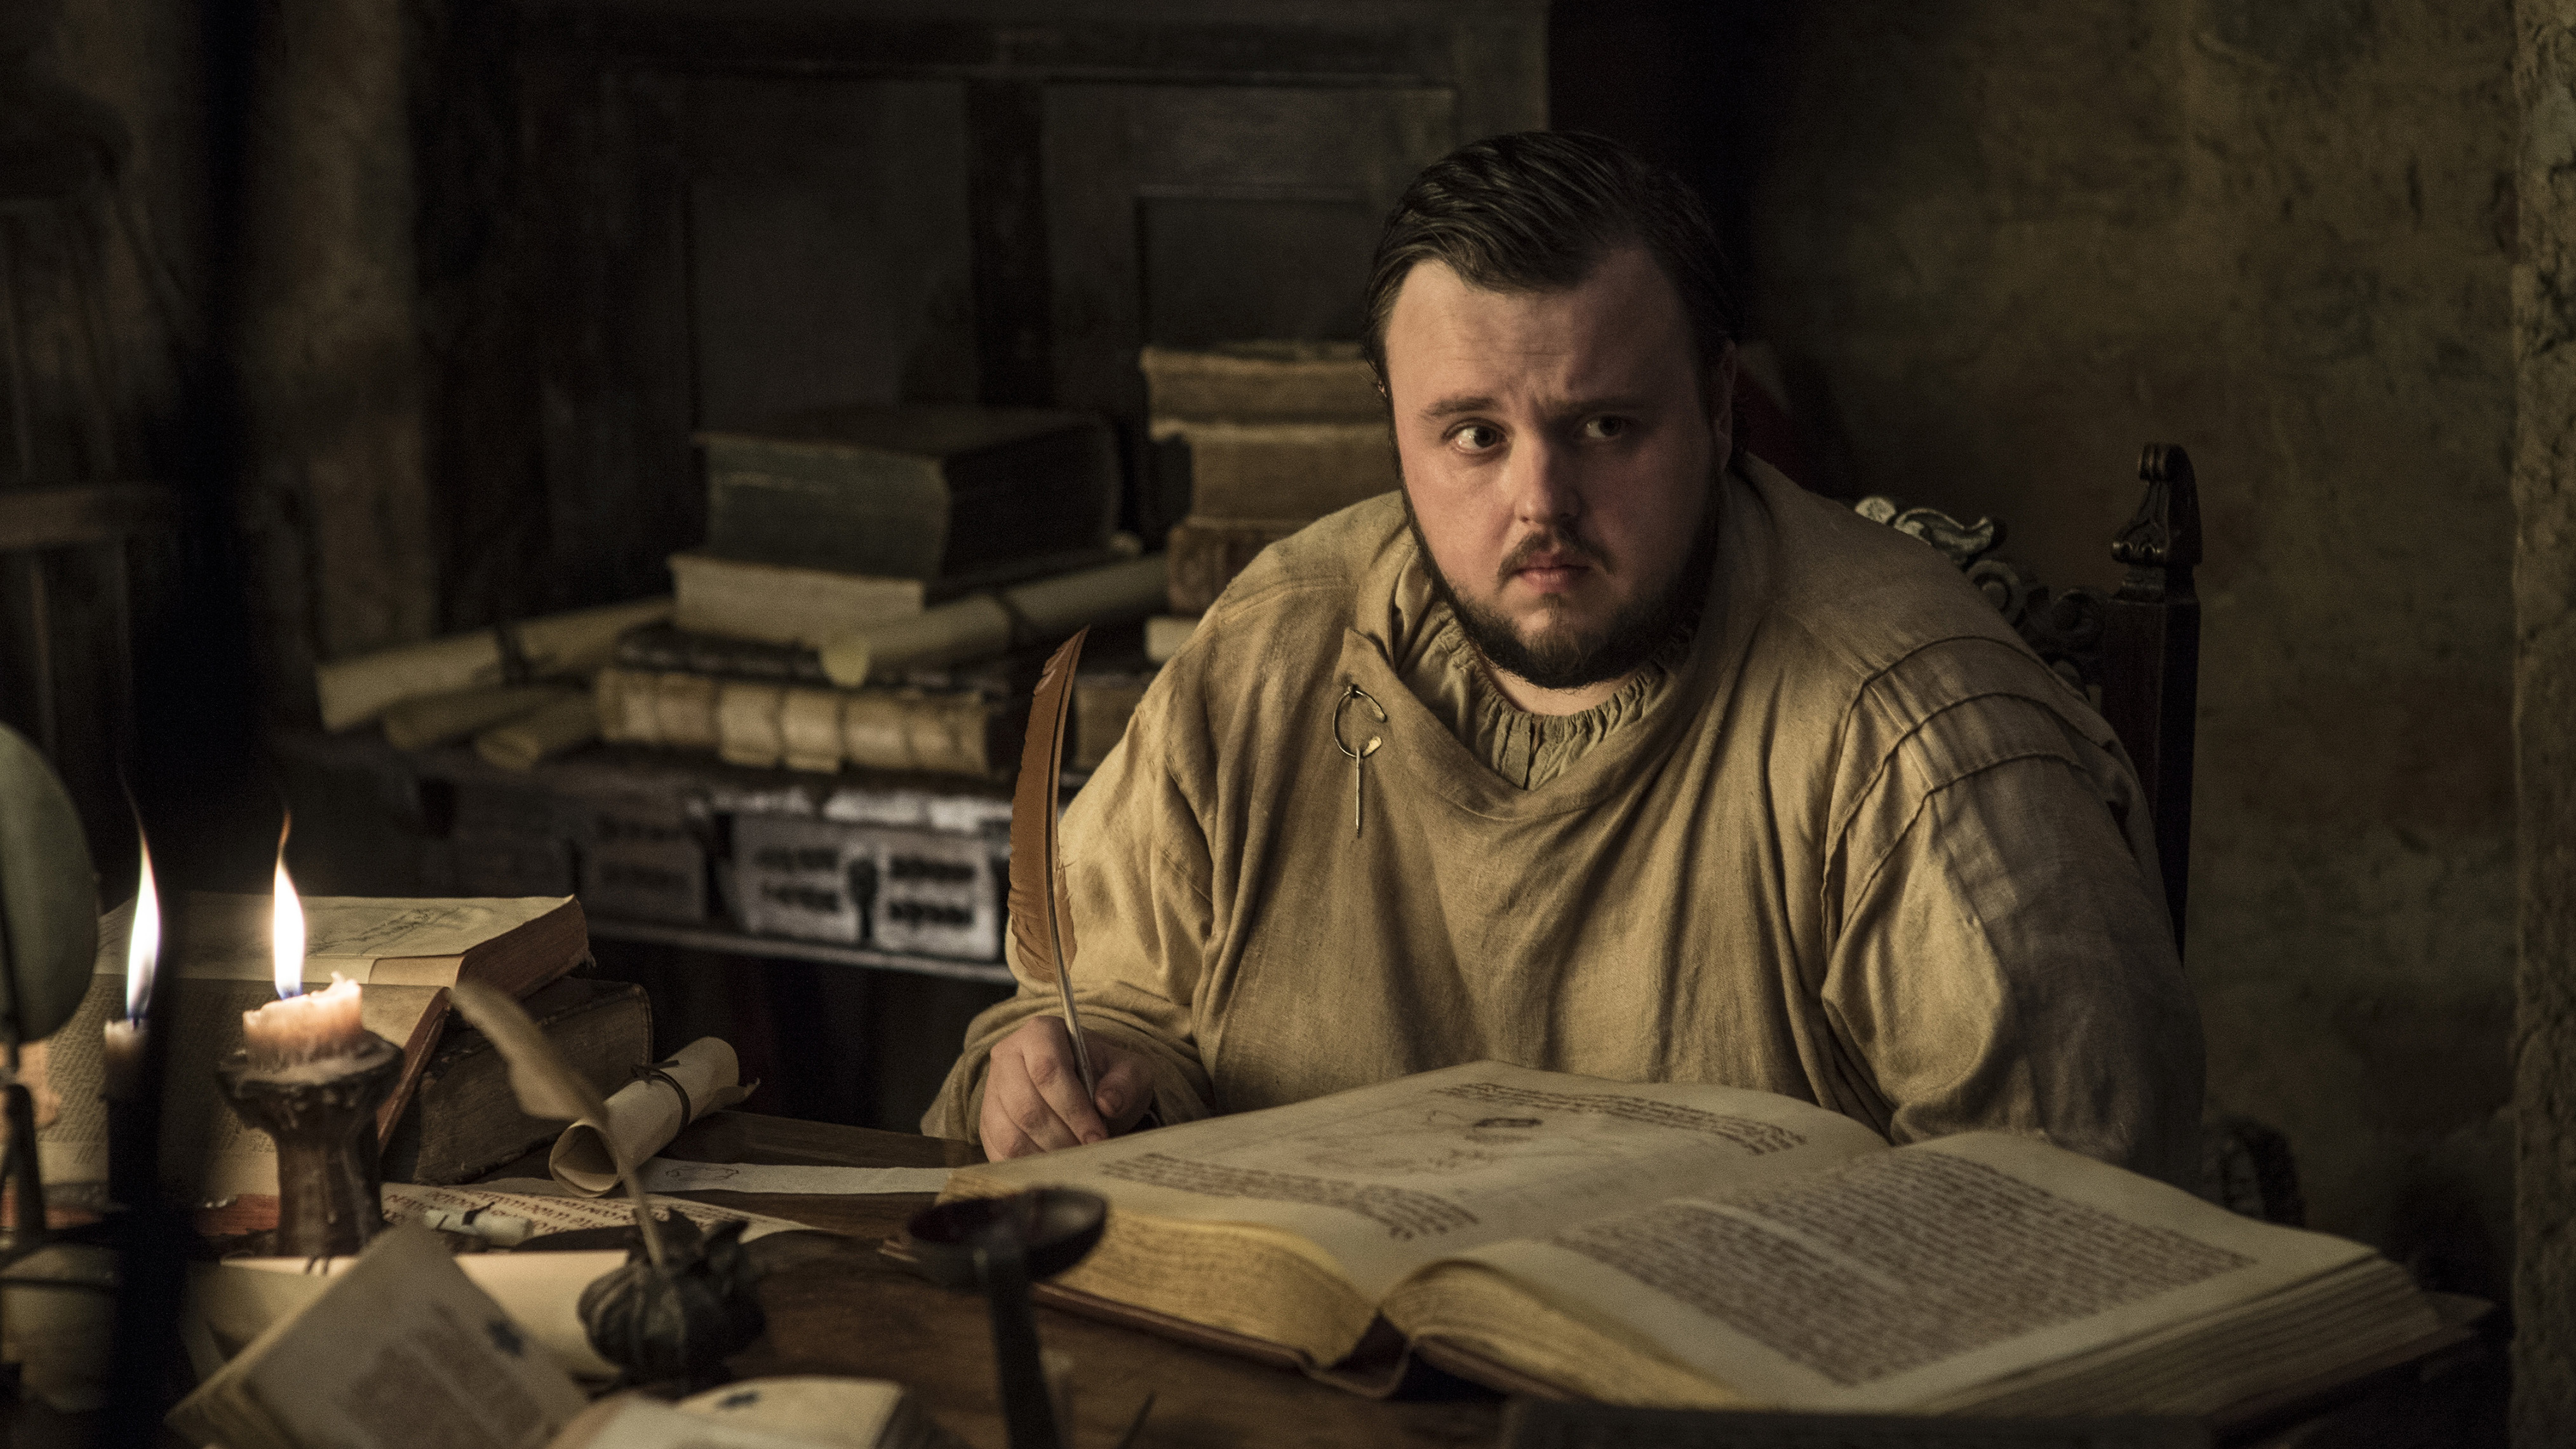 Hackers claim to have stolen information related to HBO